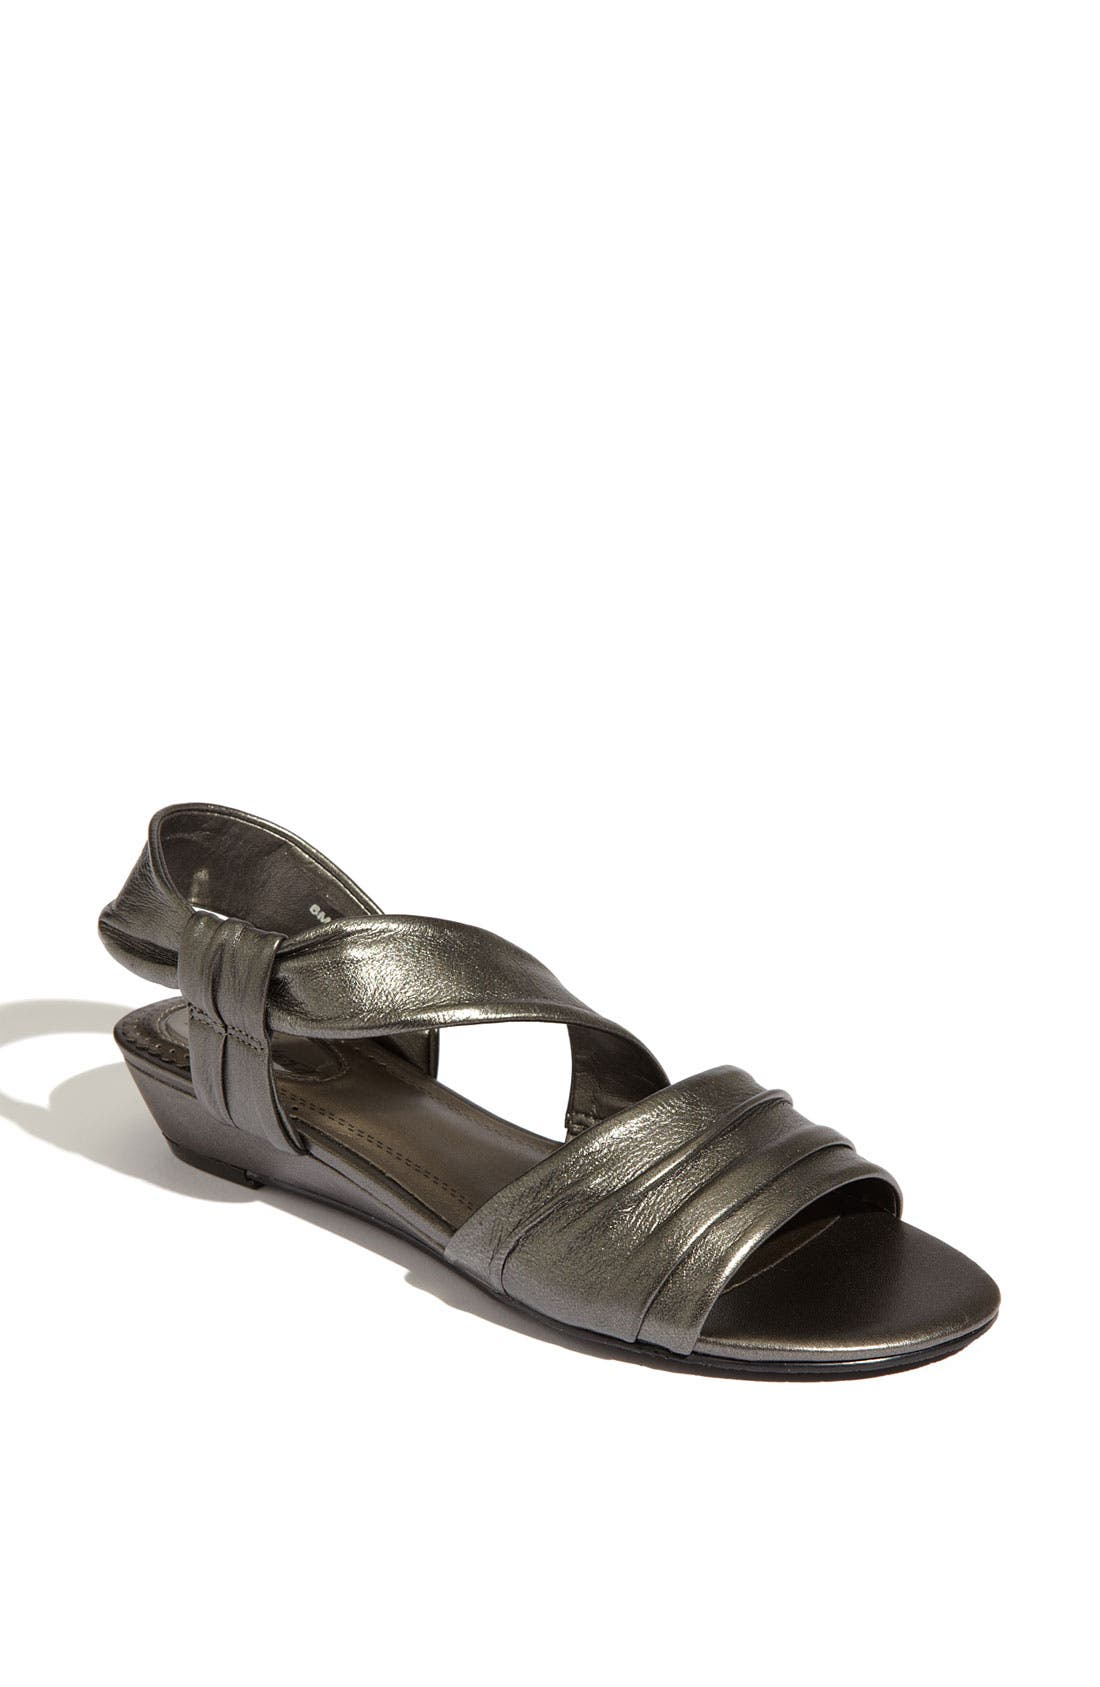 Main Image - Trotters 'Cindy' Sandal